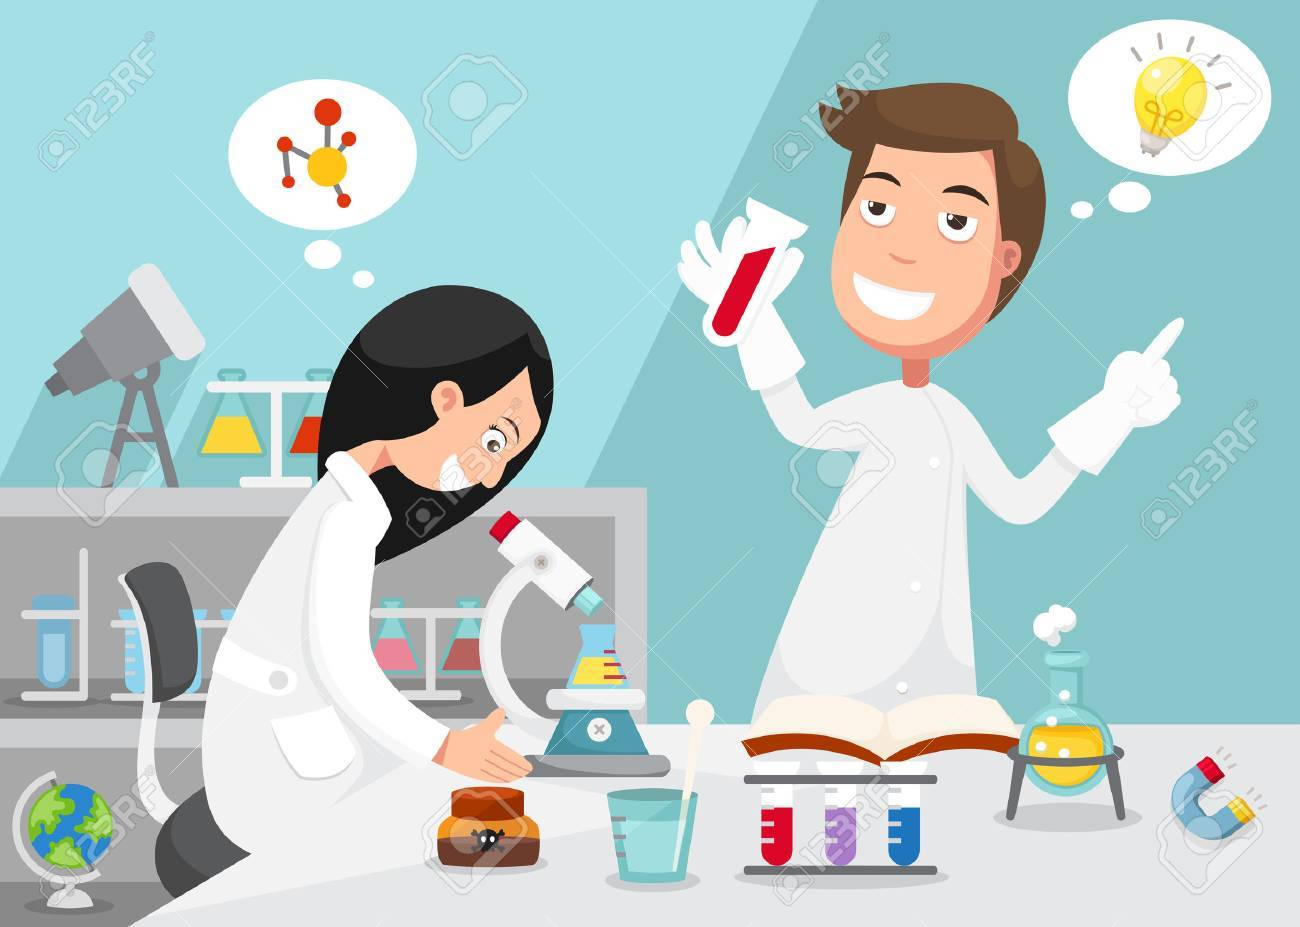 Scientists doing experiment surrounded by lab equipment . - 38628761